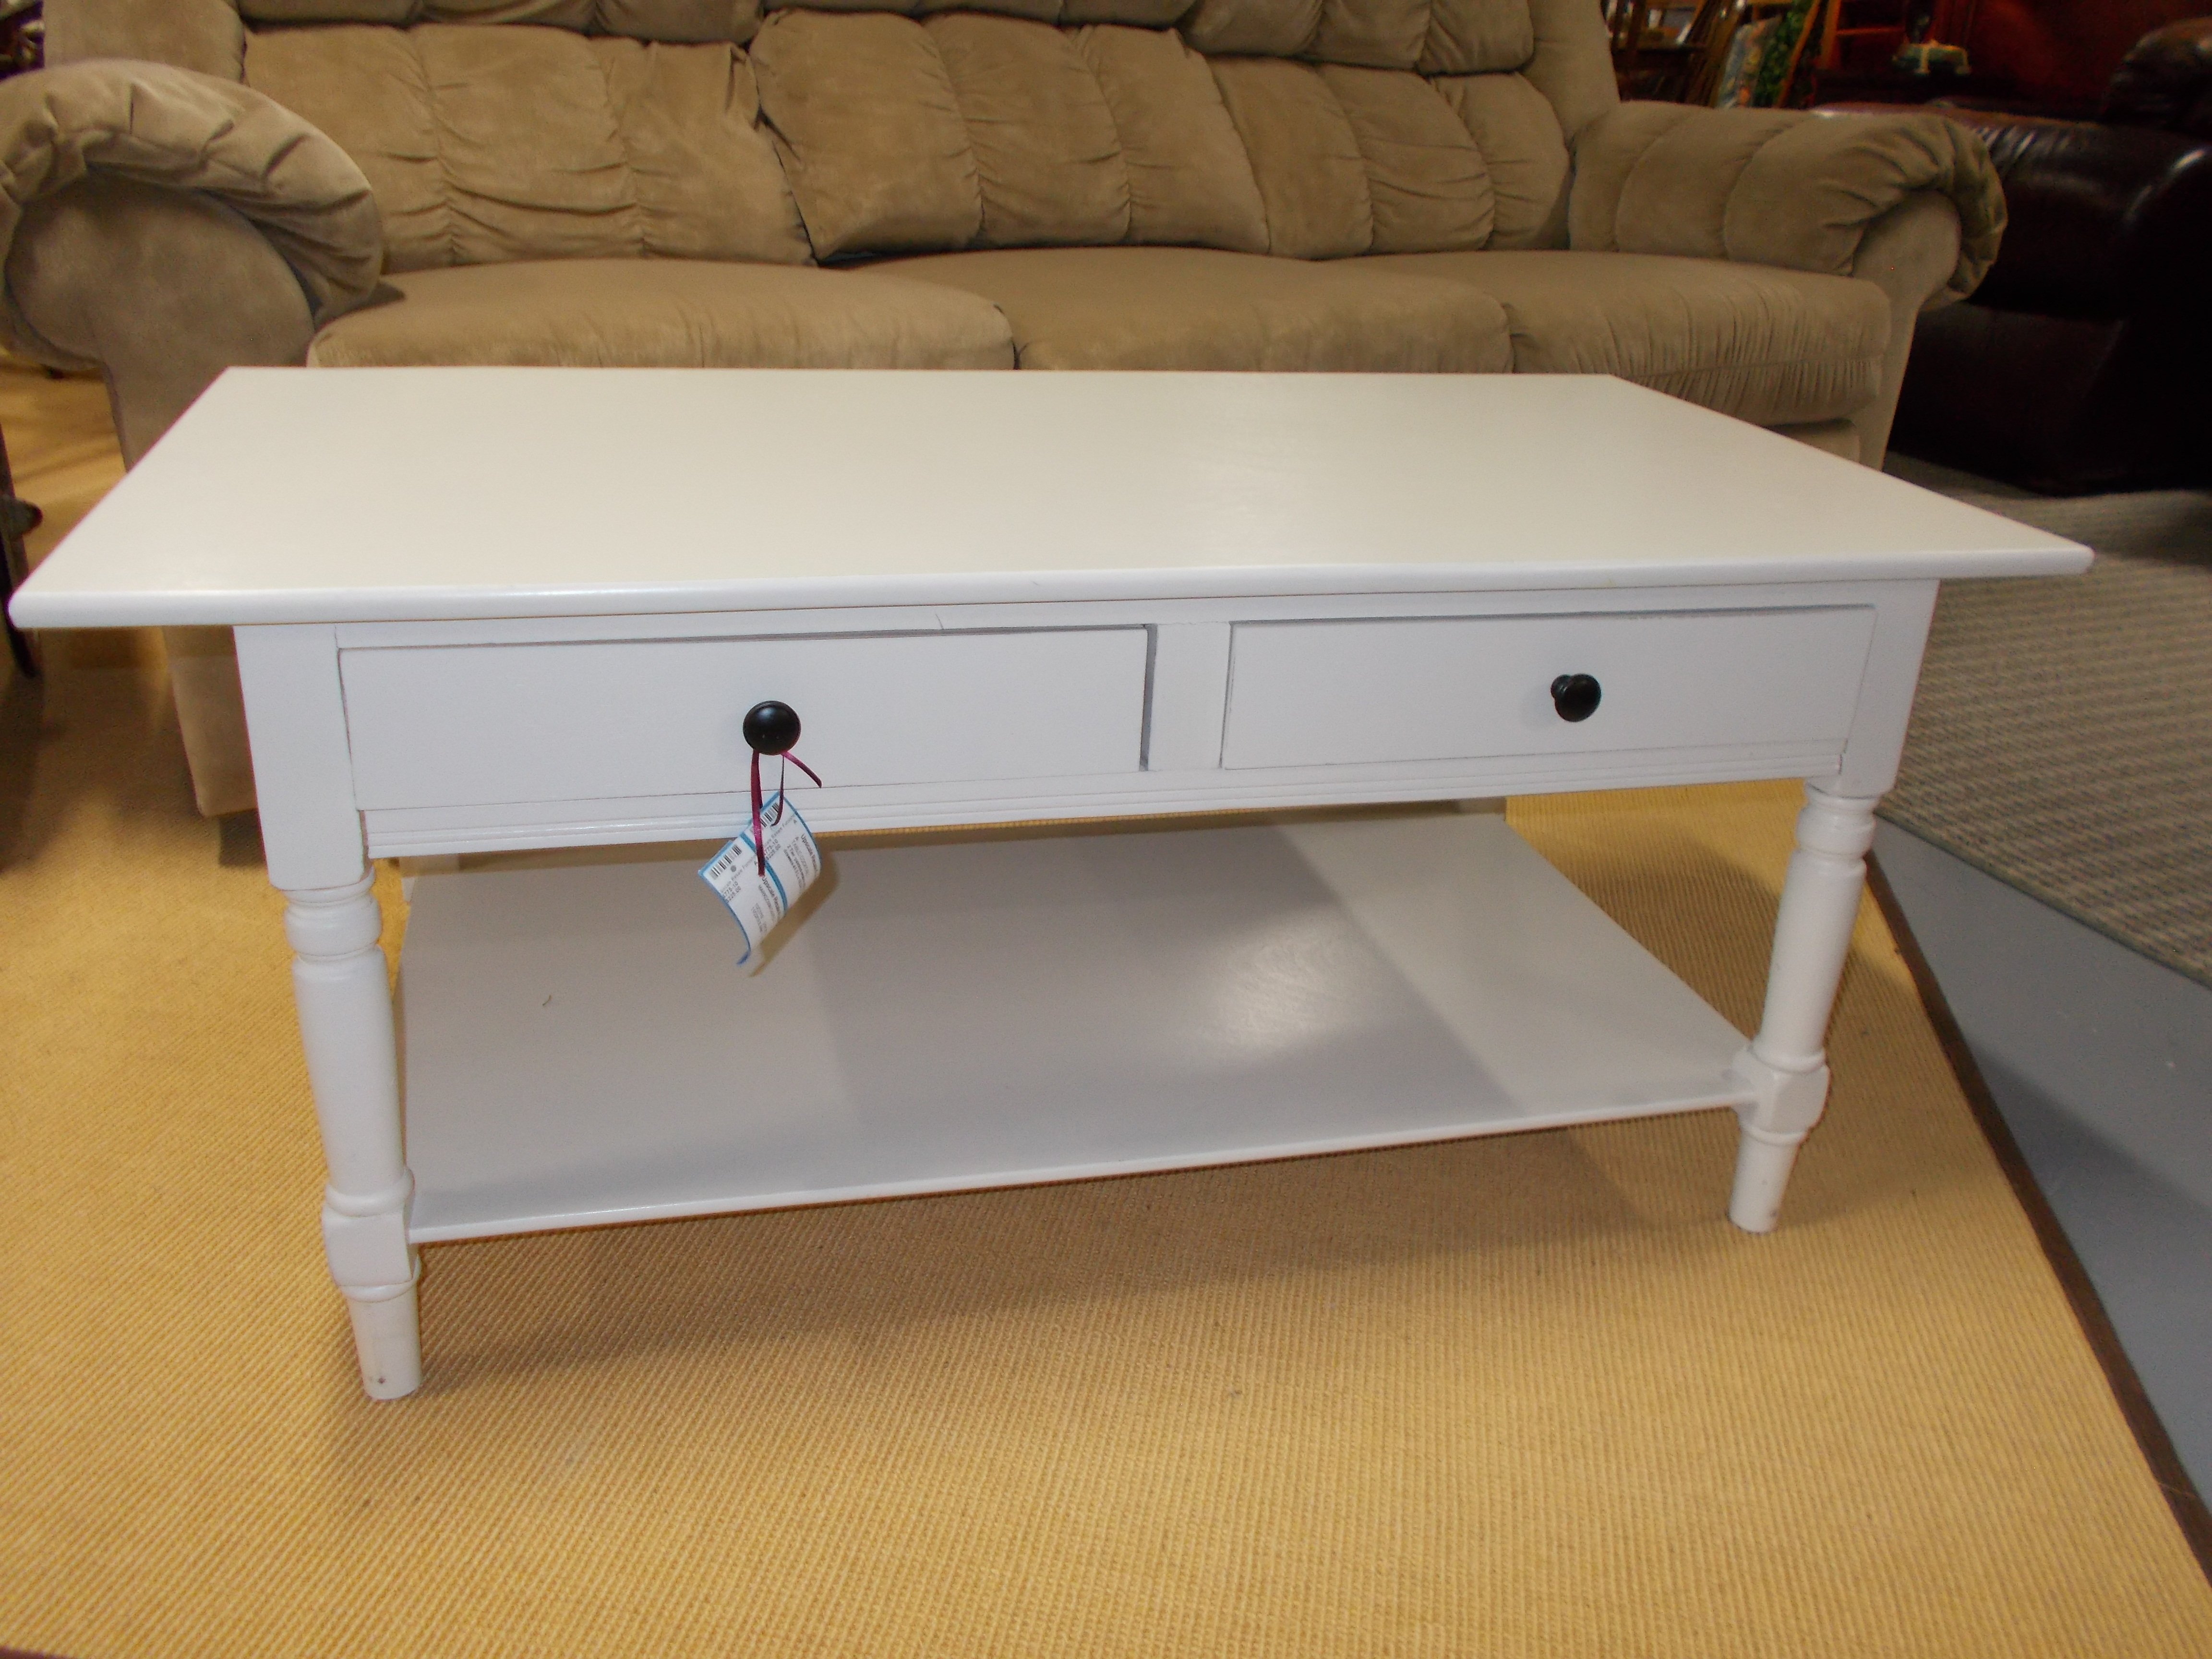 2 Tier White Painted Coffee Table With Drawers 41 5 X 21 5 X 18